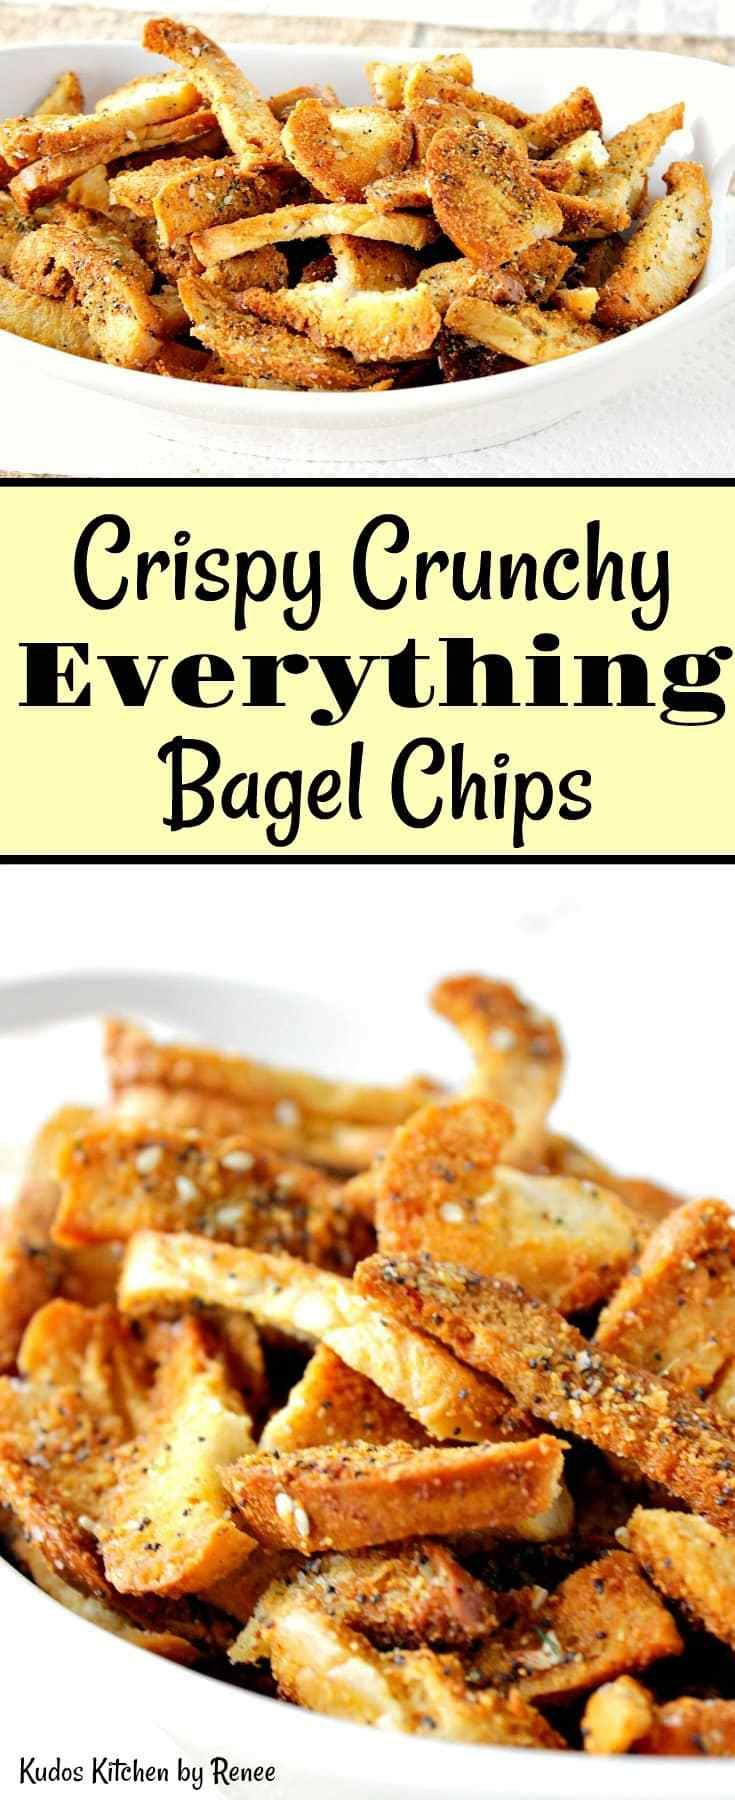 Beware! These homemade Crispy Crunchy Everything Bagel Chips are so addicting that you can't step away. Please proceed with the utmost caution! - Kudos Kitchen by Renee